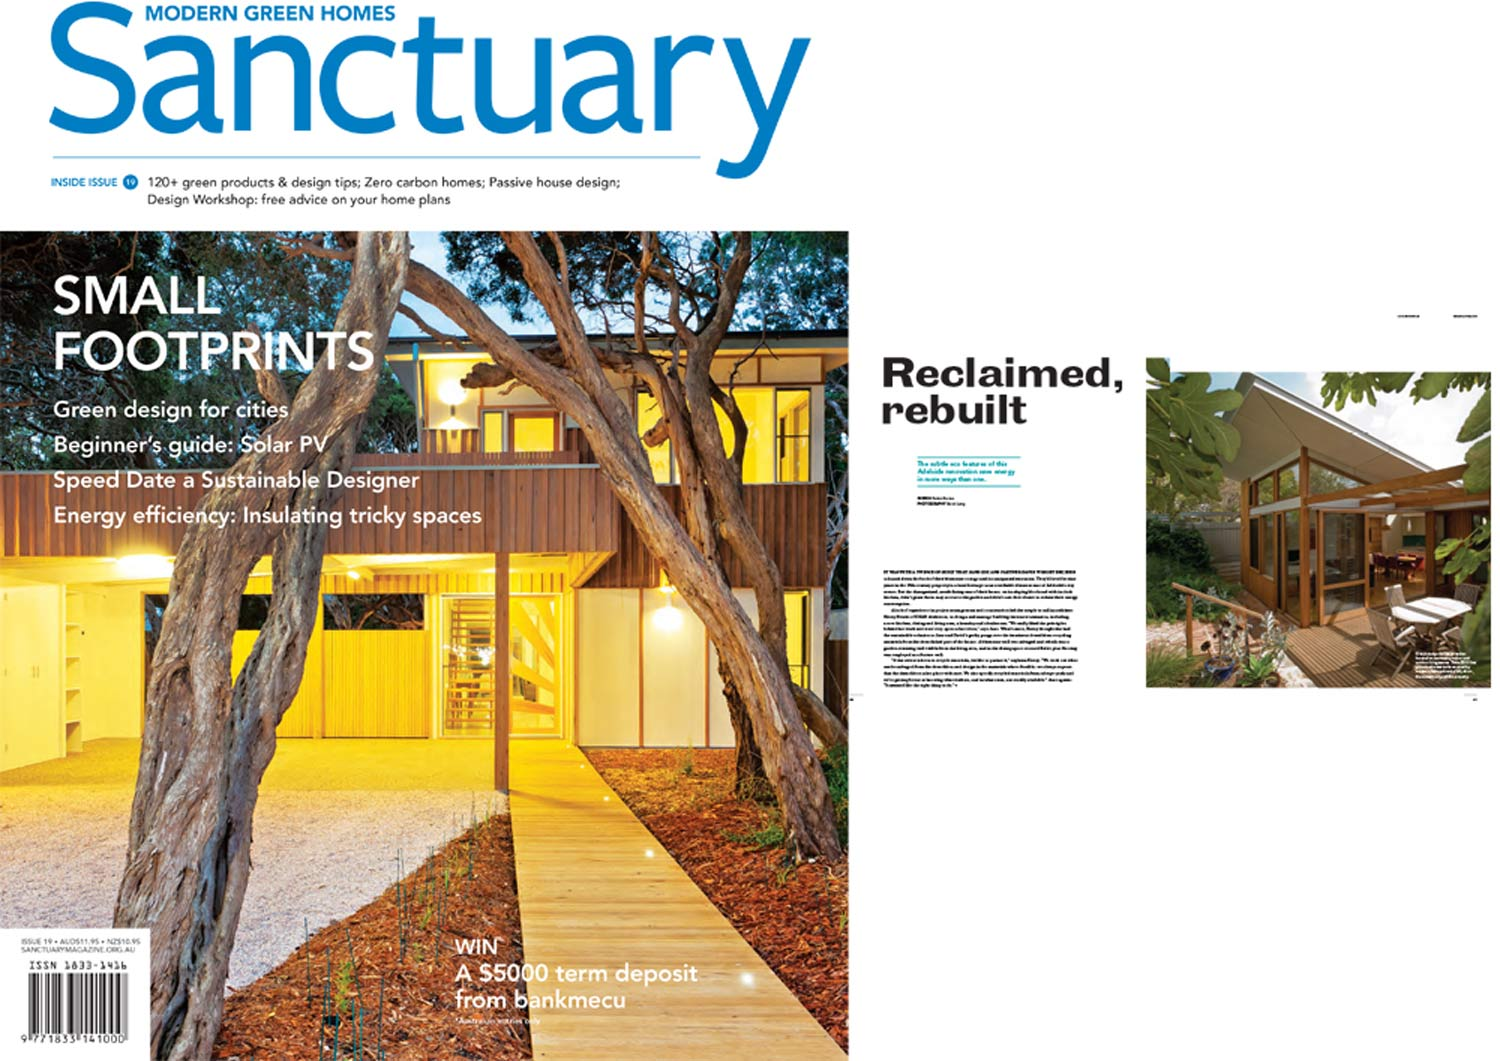 https://renew.org.au/sanctuary-magazine/      #khabarchitects #paintcolour #adelaidehouse #awardwinningarchitecture  #architect #architecturelovers #architect #architecturephotography #architectureporn #architects #architectural #architecturelover #architecturestudent #architecturalphotography #architecturedesign #architectanddesign #architecturephoto #architecturaldesign #architectureschool #architecturaldigest #architecturesketch #architecturemodel #architectura #Architecte #architecturelife #architecturegram #architectureandpeople #architecturelove #architecturedaily #buildings #adlarchigram #courtyardhouse @adelaide_photographer #pressedtin #naturaltimber #dulux #duluxcolour #adelaide #khabarchitects #paintcolour #adelaidehouse #awardwinningarchitecture